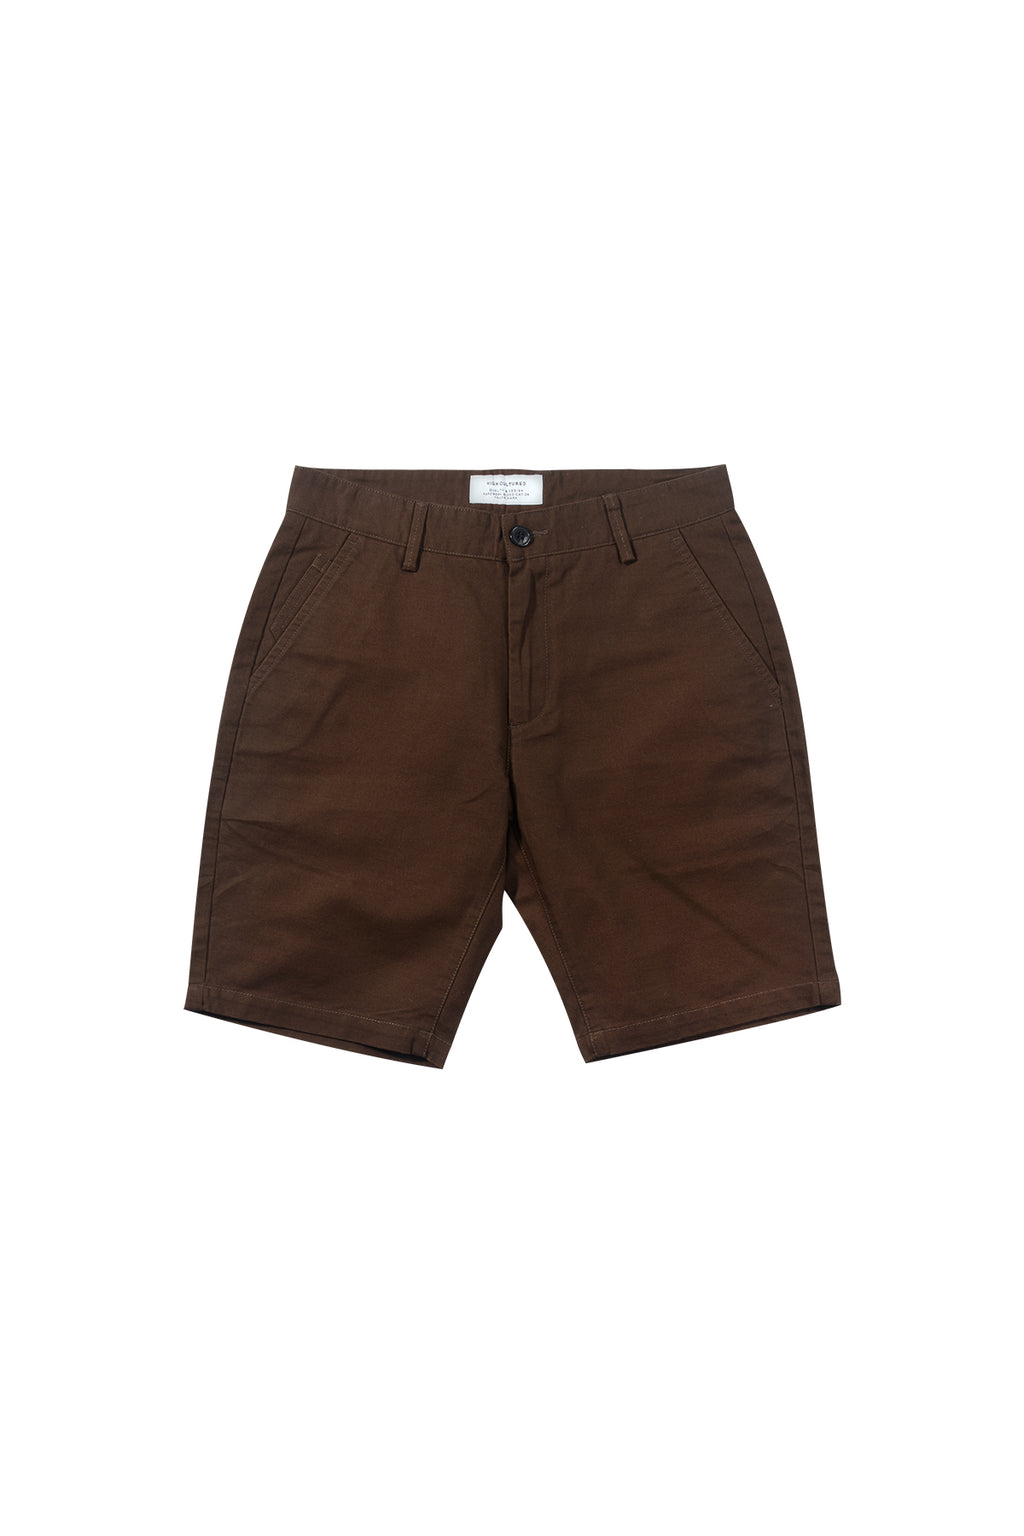 STANDARD-FIT CHINO SHORT PANT | BROWN - 94